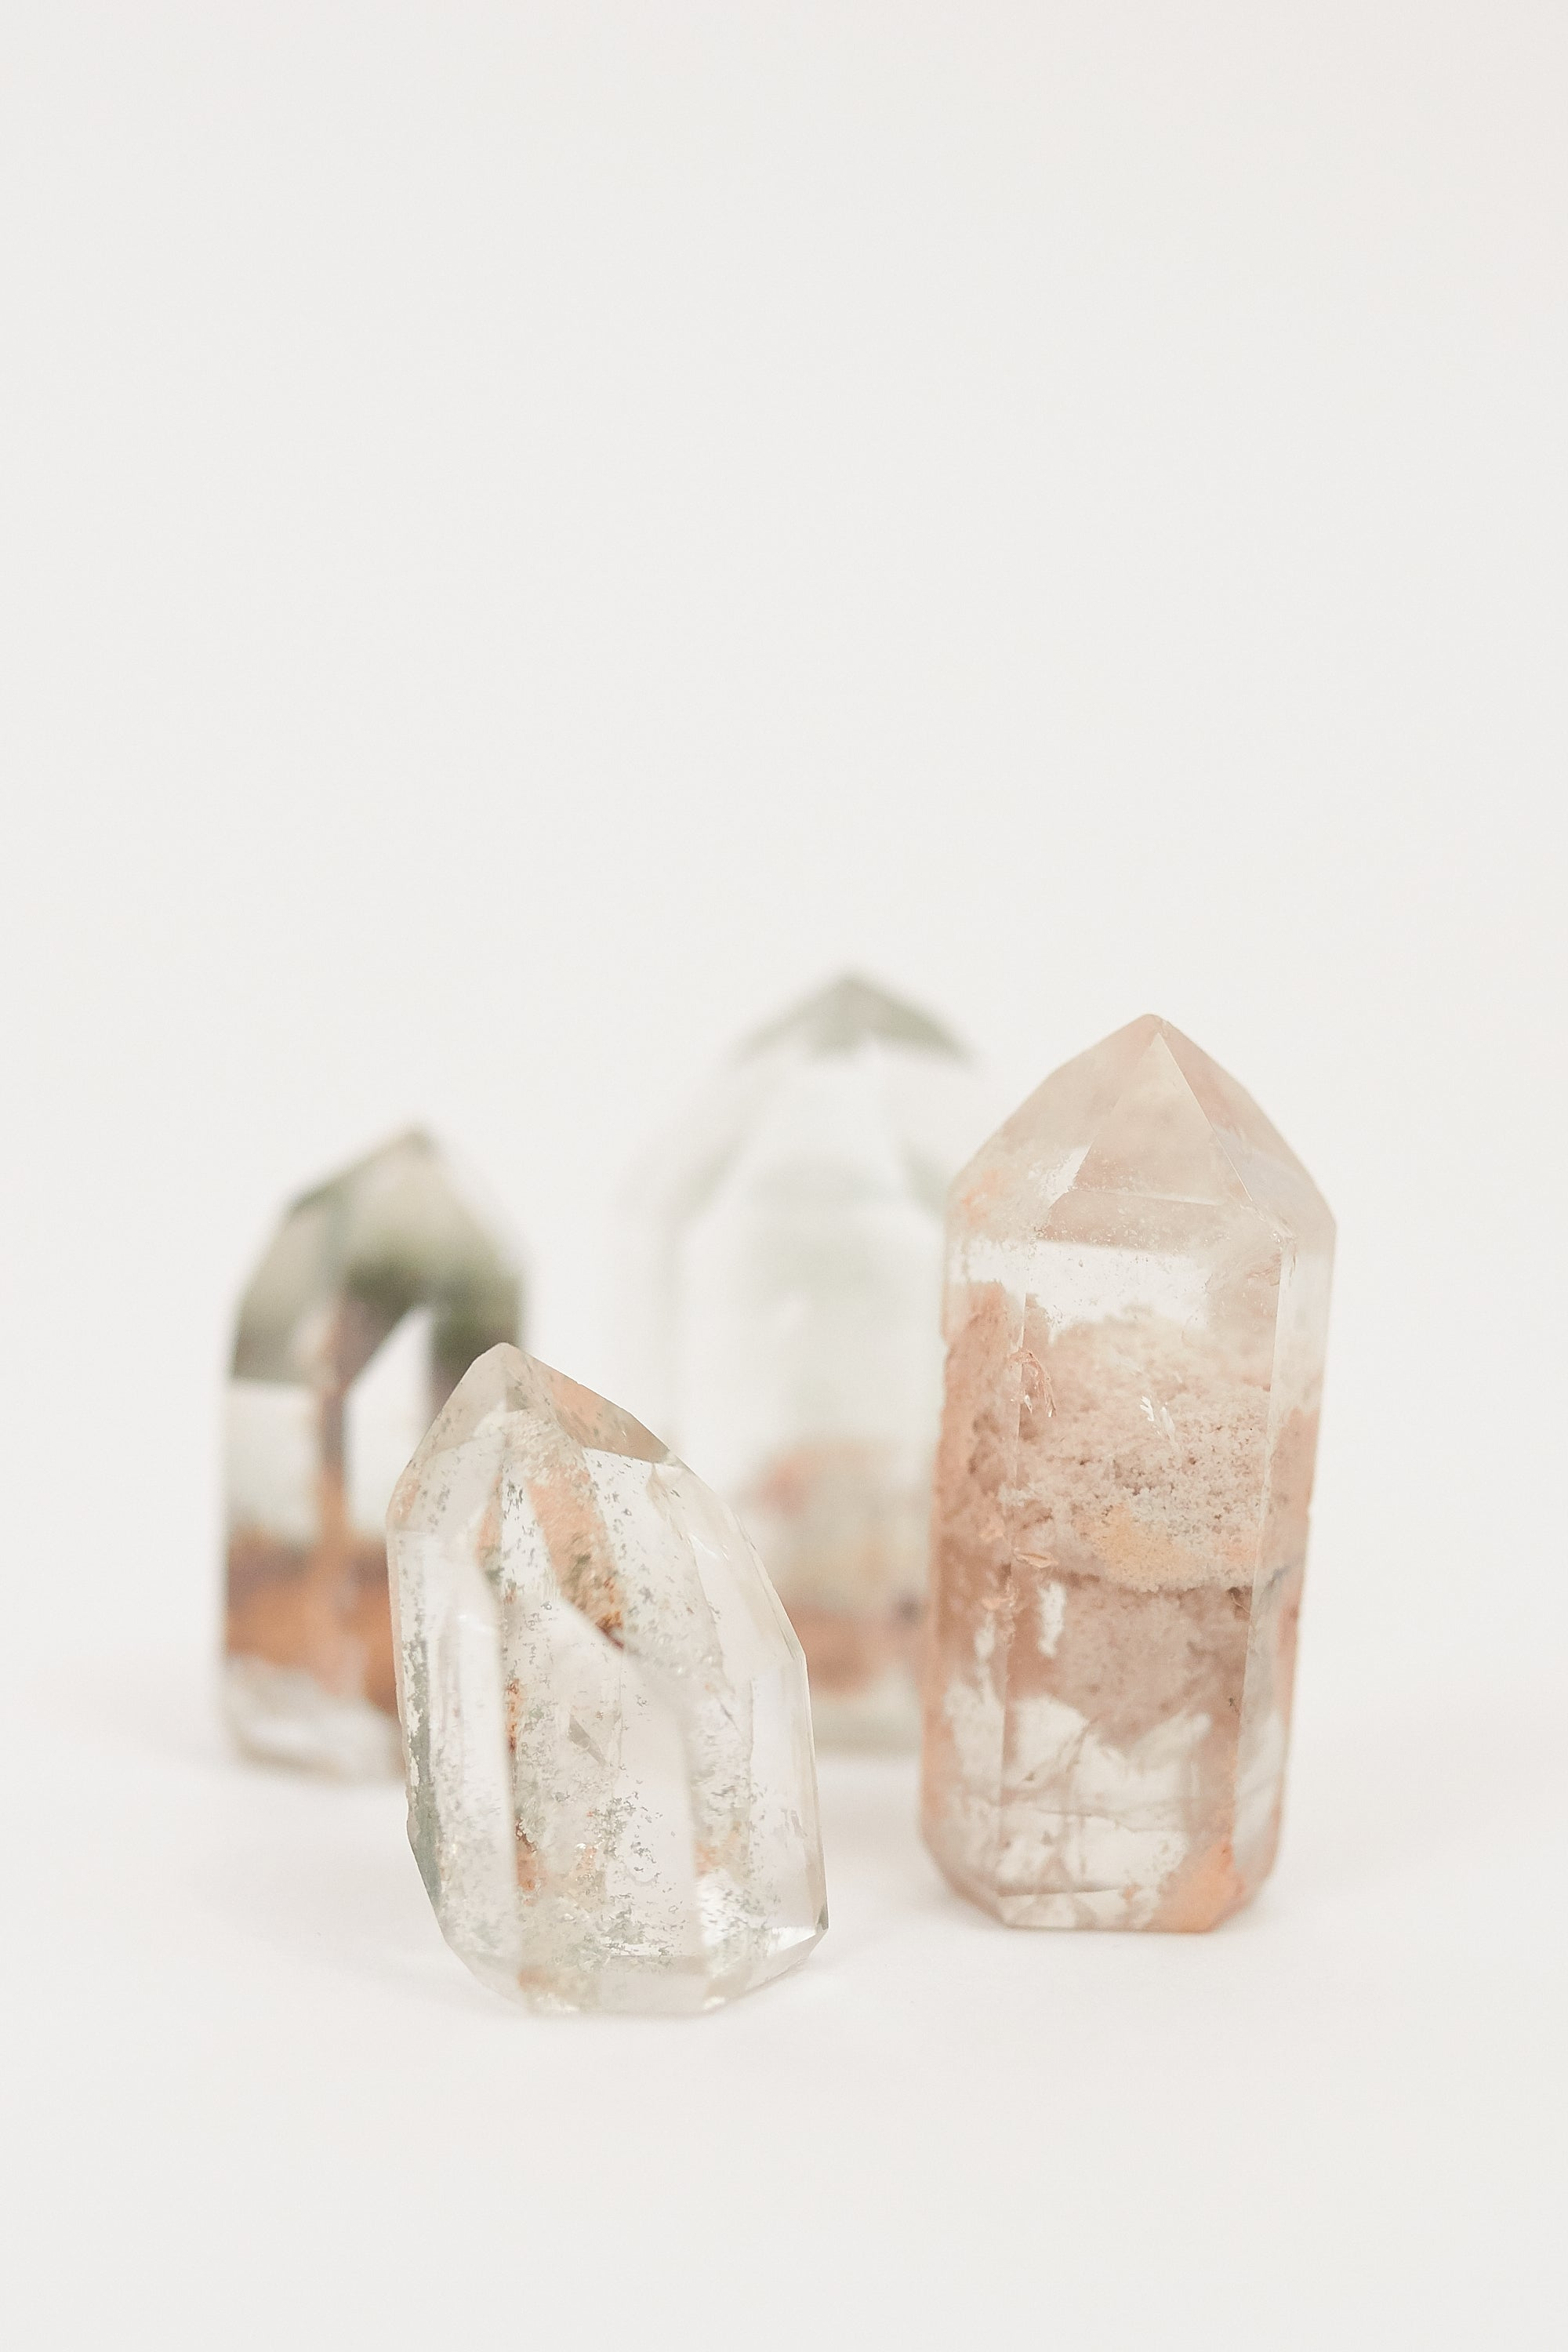 Polished Included Quartz Crystal